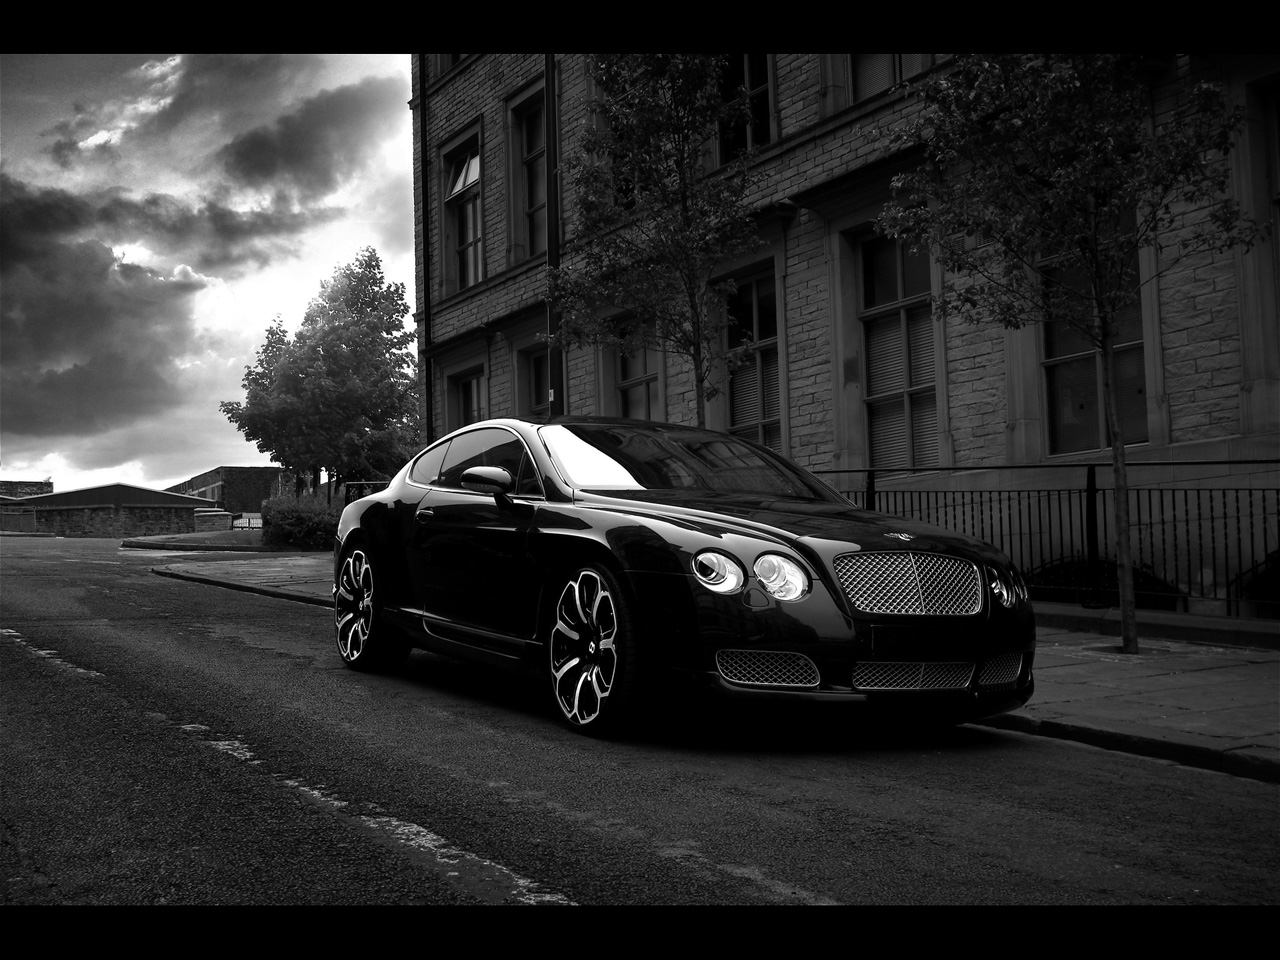 wallpaper car black wallpapers high quality resolution : cars 1280x960